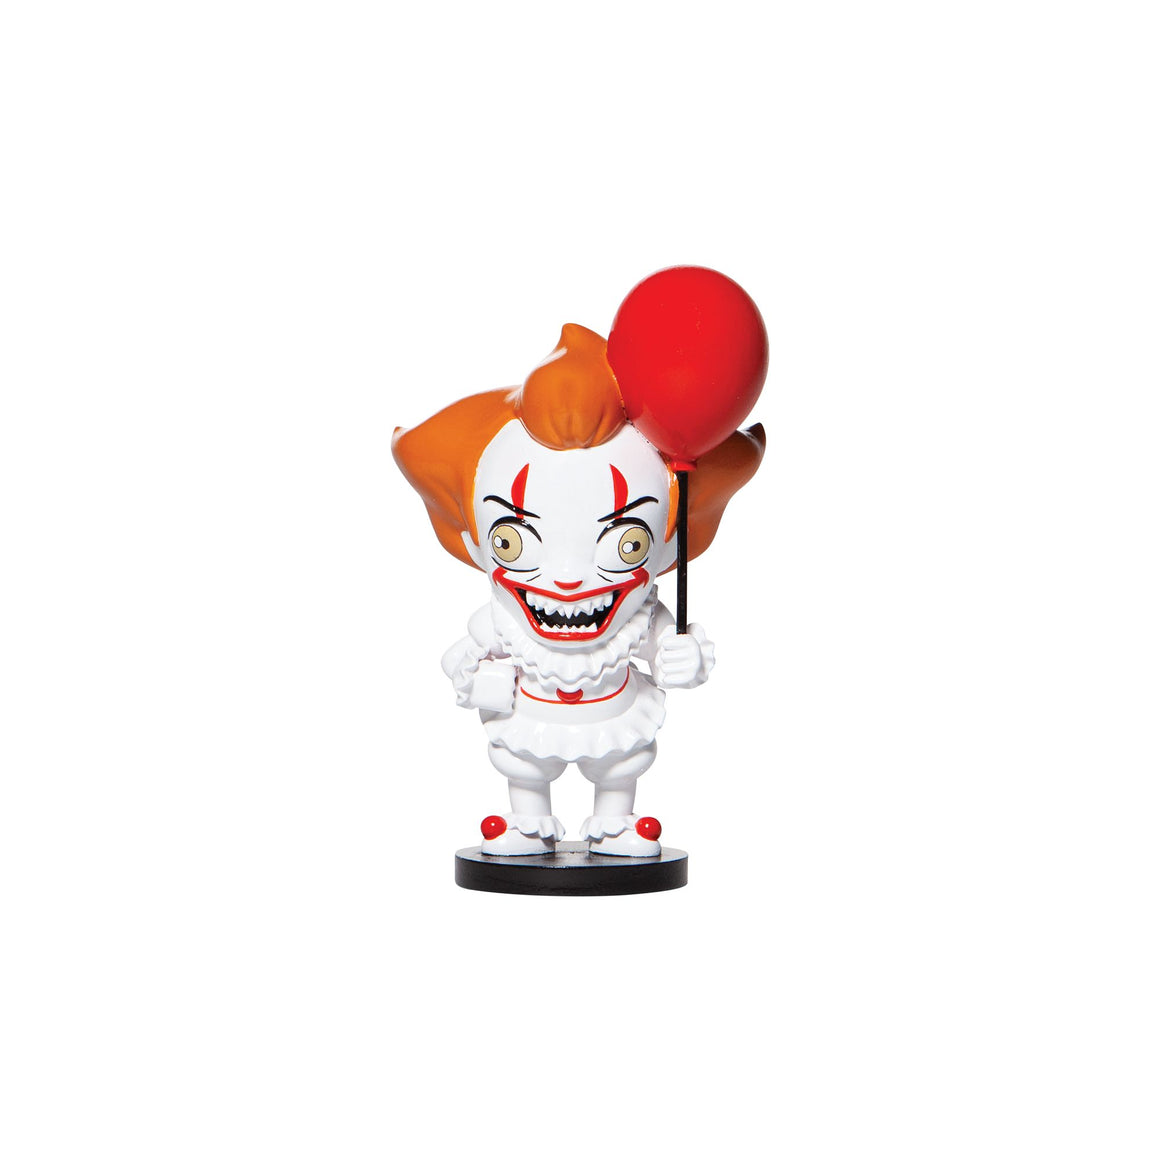 IT Figurine - Warner Brothers Horror